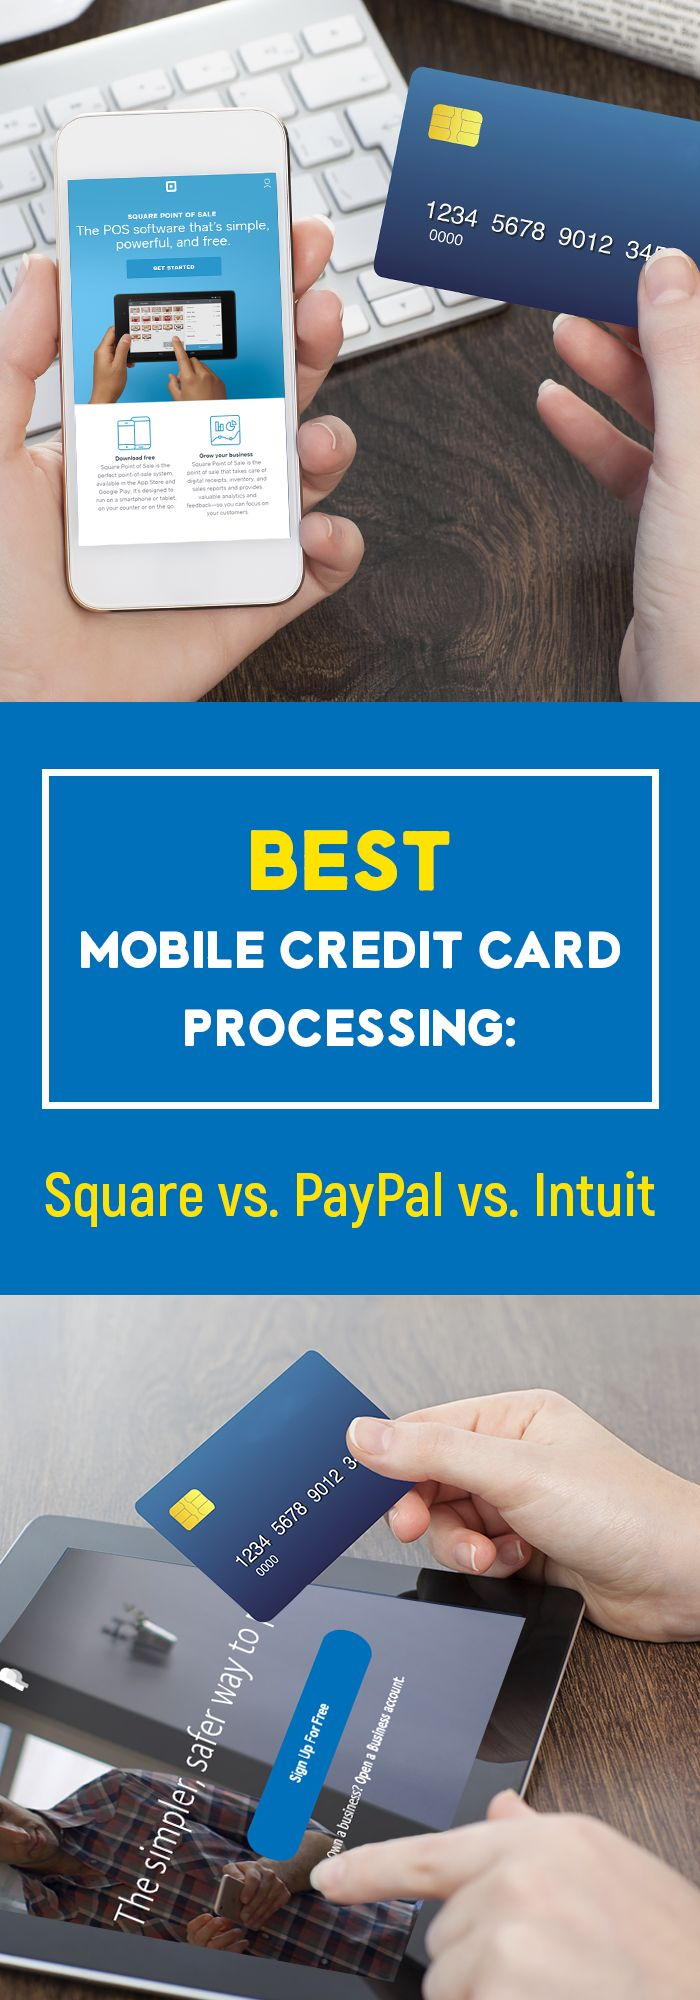 Best Mobile Credit Card Processing: Square vs. PayPal vs. Intuit